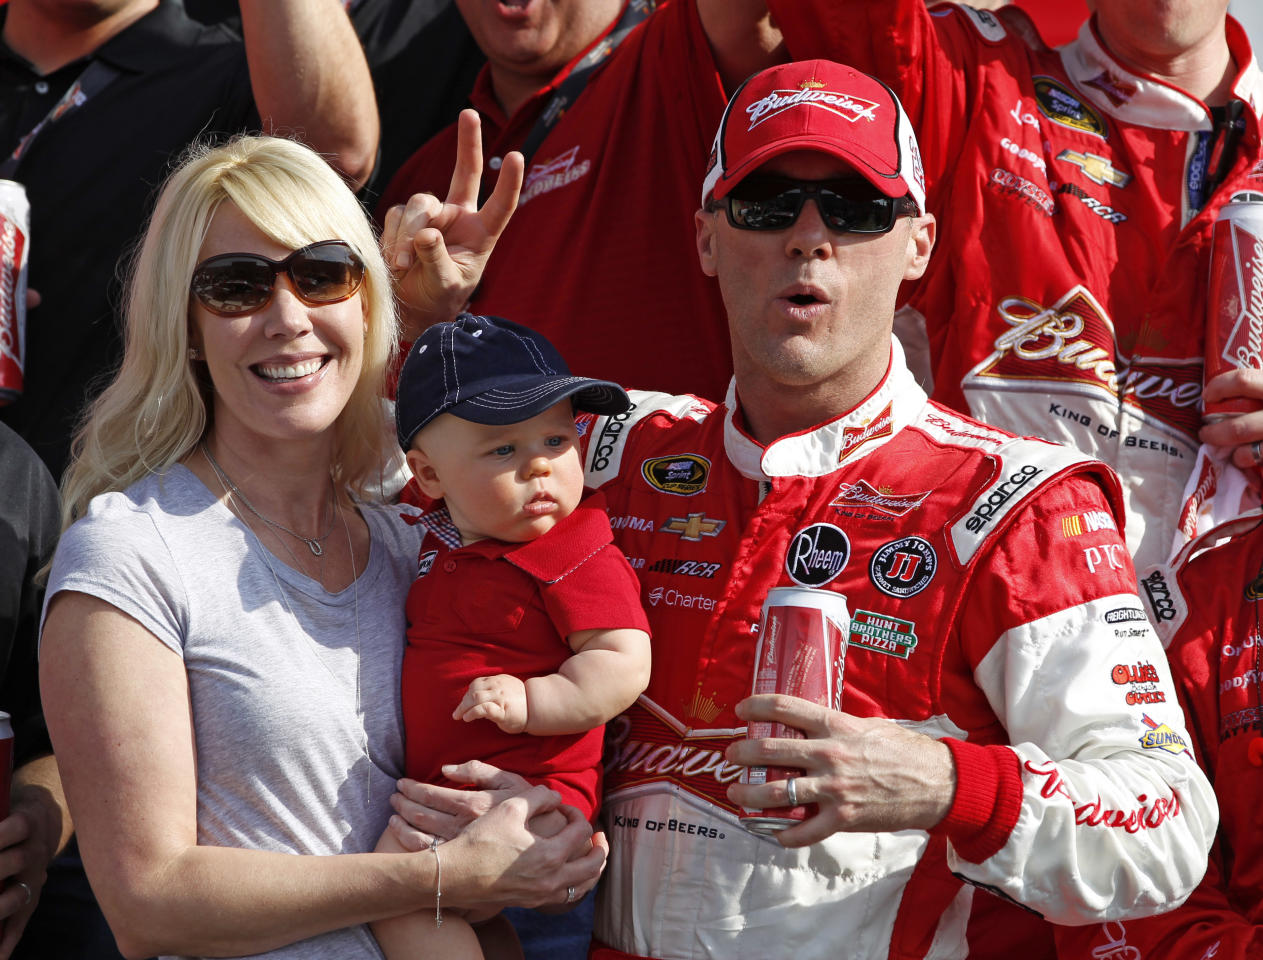 Kevin Harvick, right, celebrates with his wife, Delana, and daughter, Keelan, 7 months, in Victory Lane after winning the first of two 150-mile qualifying races for the NASCAR Daytona 500 auto race at Daytona International Speedway, Thursday, Feb. 21, 2013, in Daytona Beach, Fla. (AP Photo/Terry Renna)